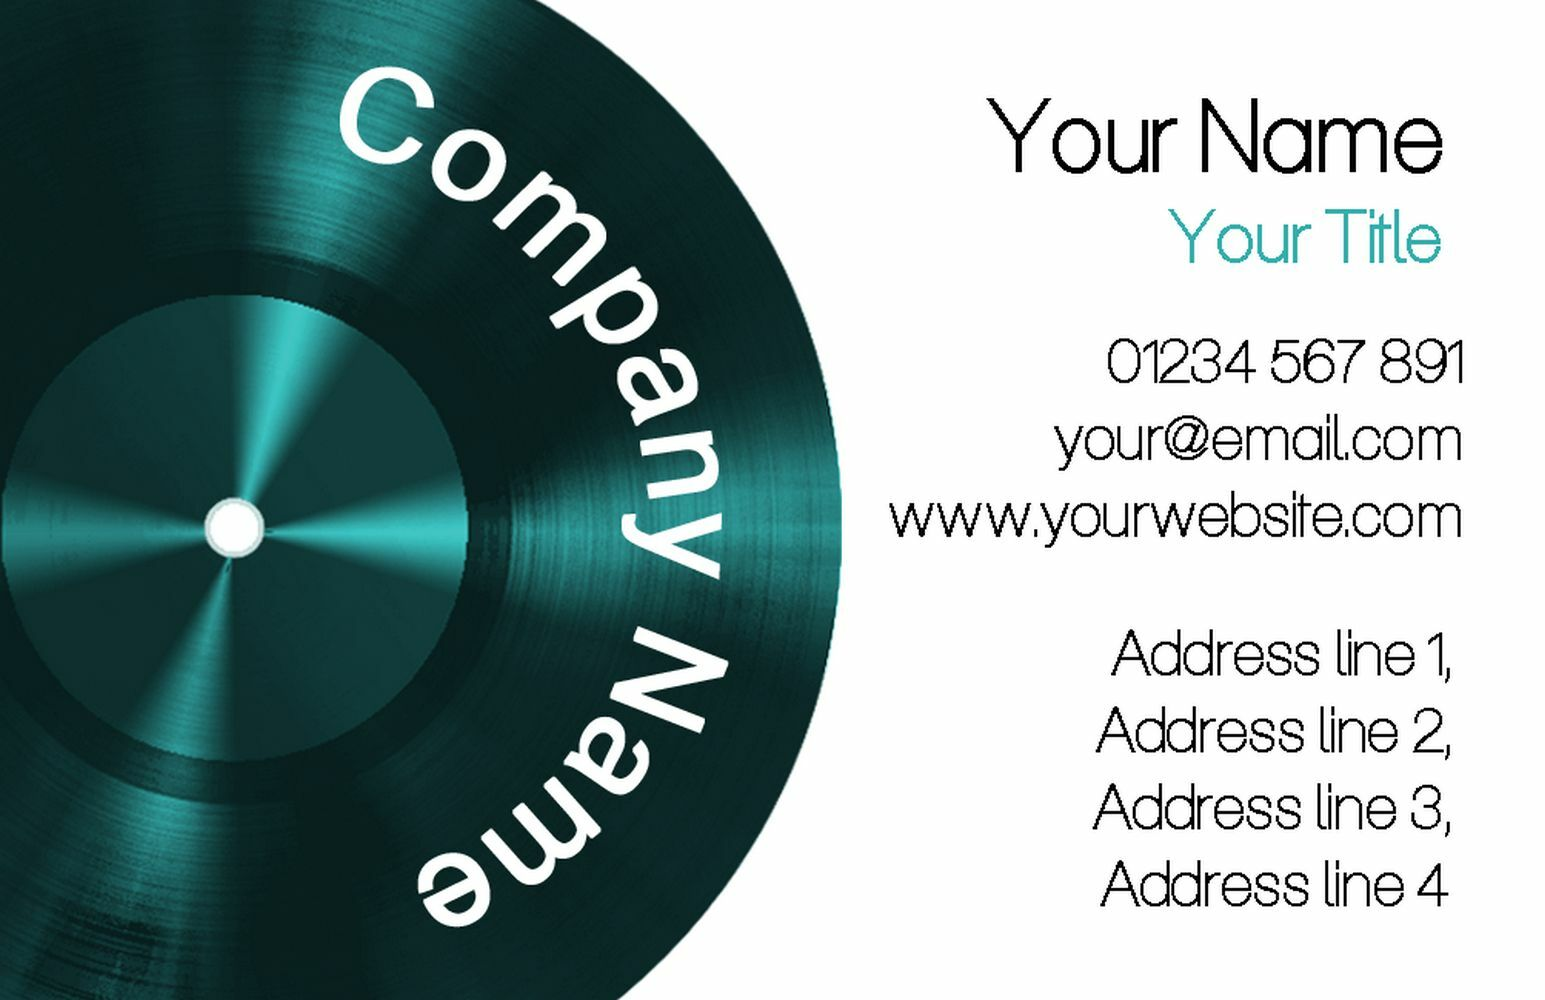 Grün Lp Music Record Personalised Business Cards